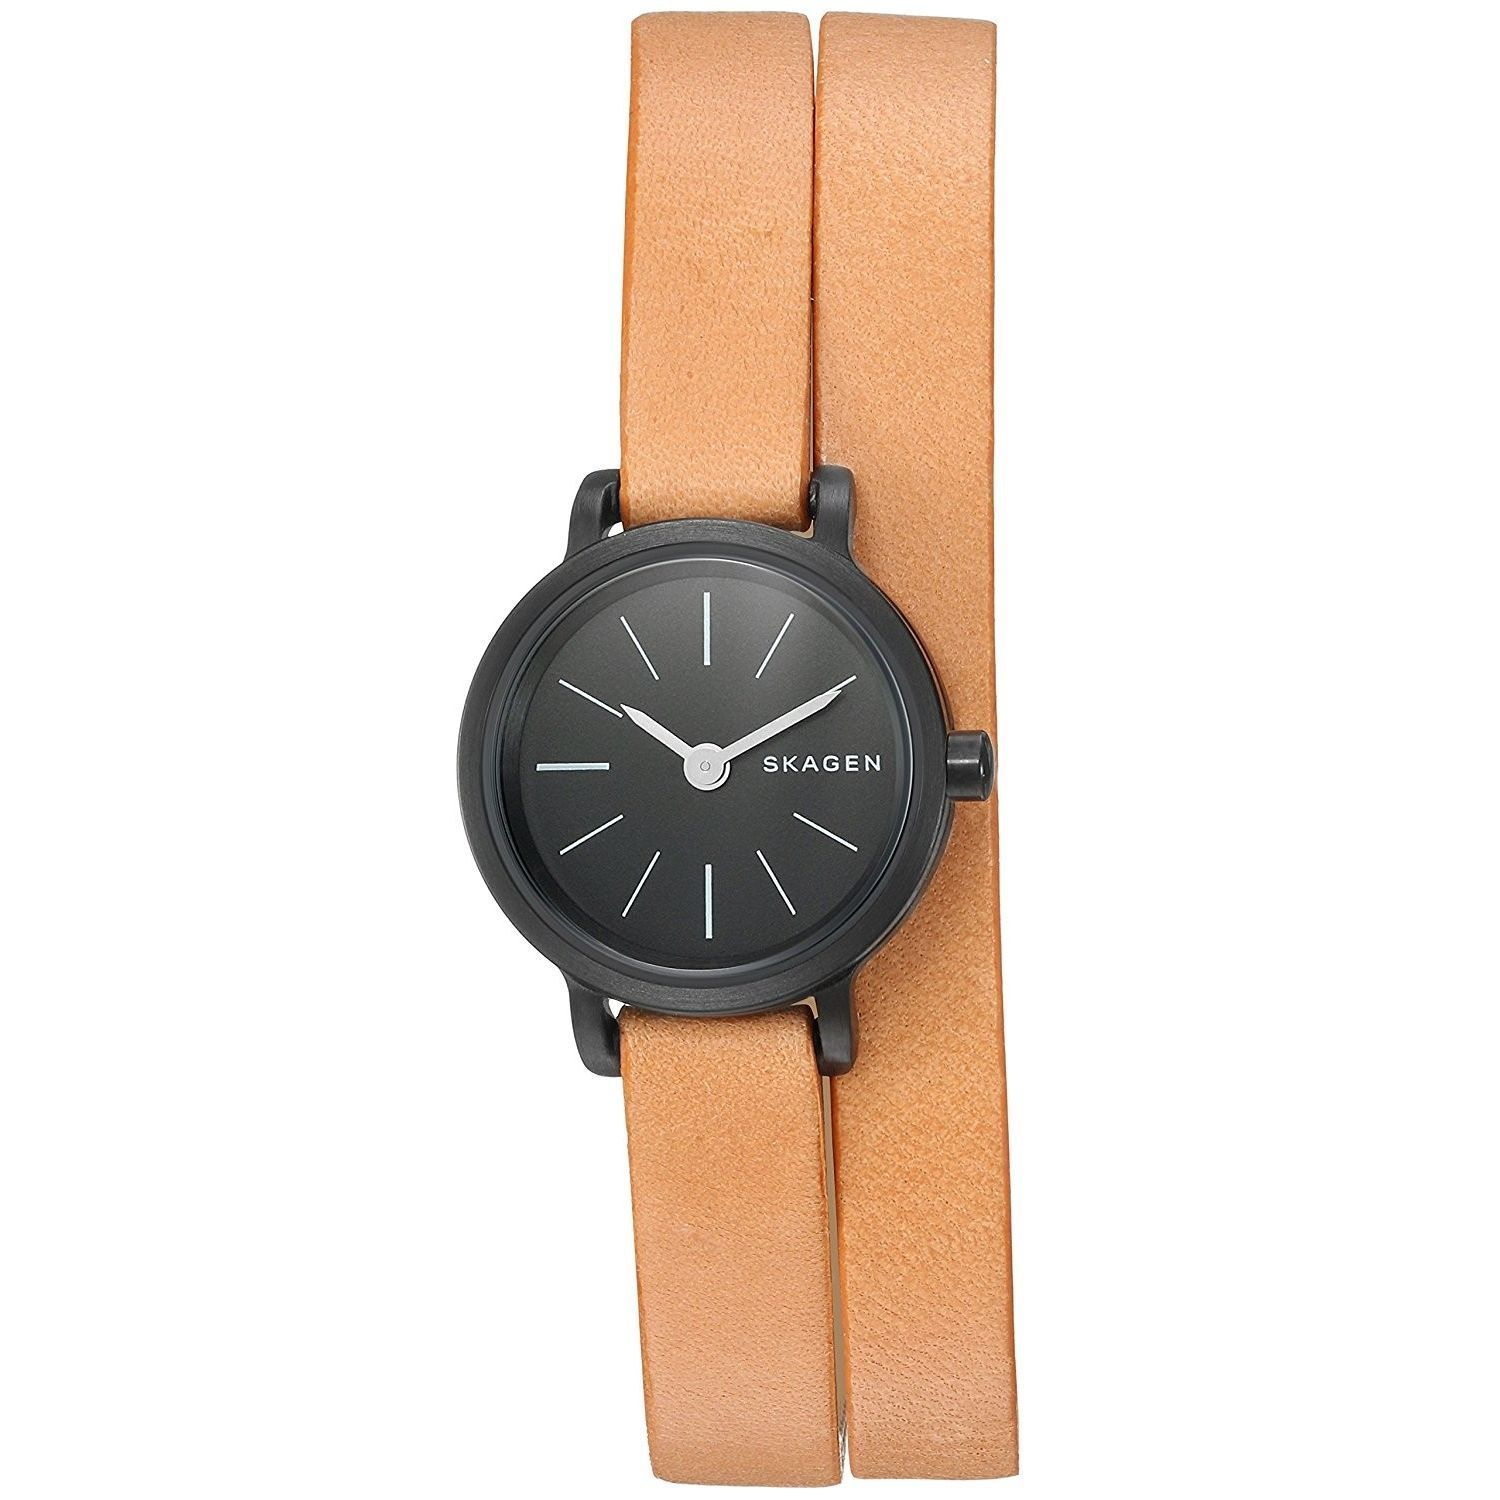 mens review watches c skagen image leather s watch strap hagen chriselli tan